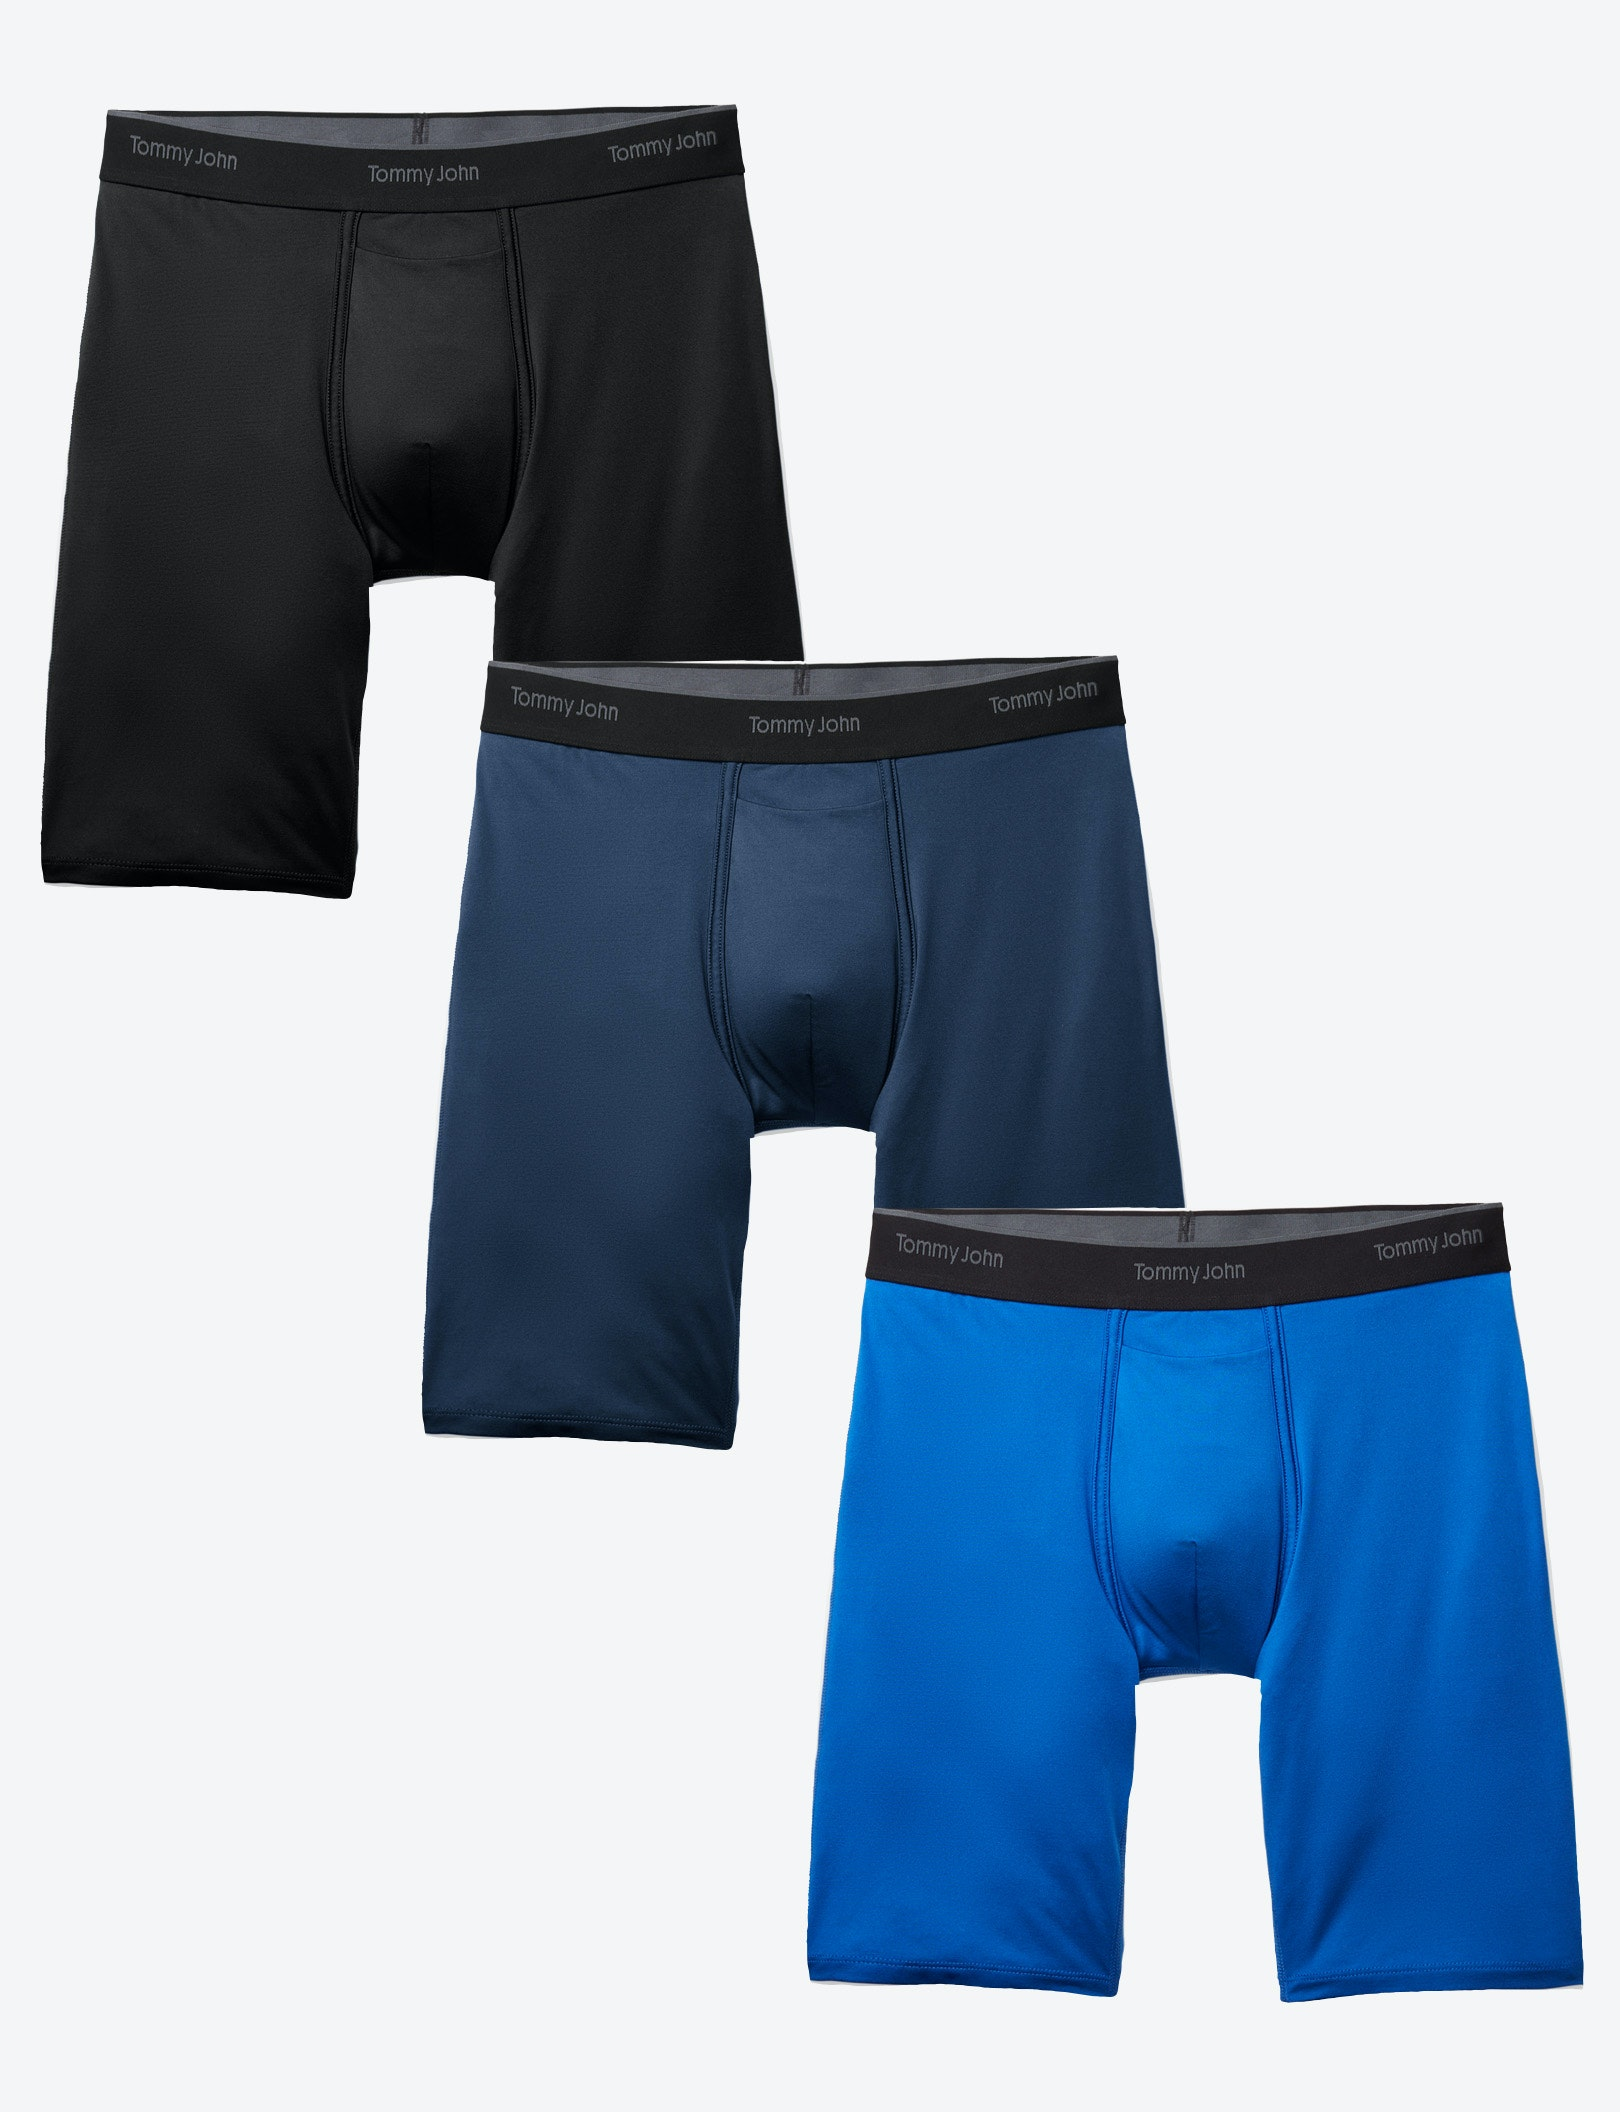 Image of Go Anywhere™ Boxer Brief 3 Pack